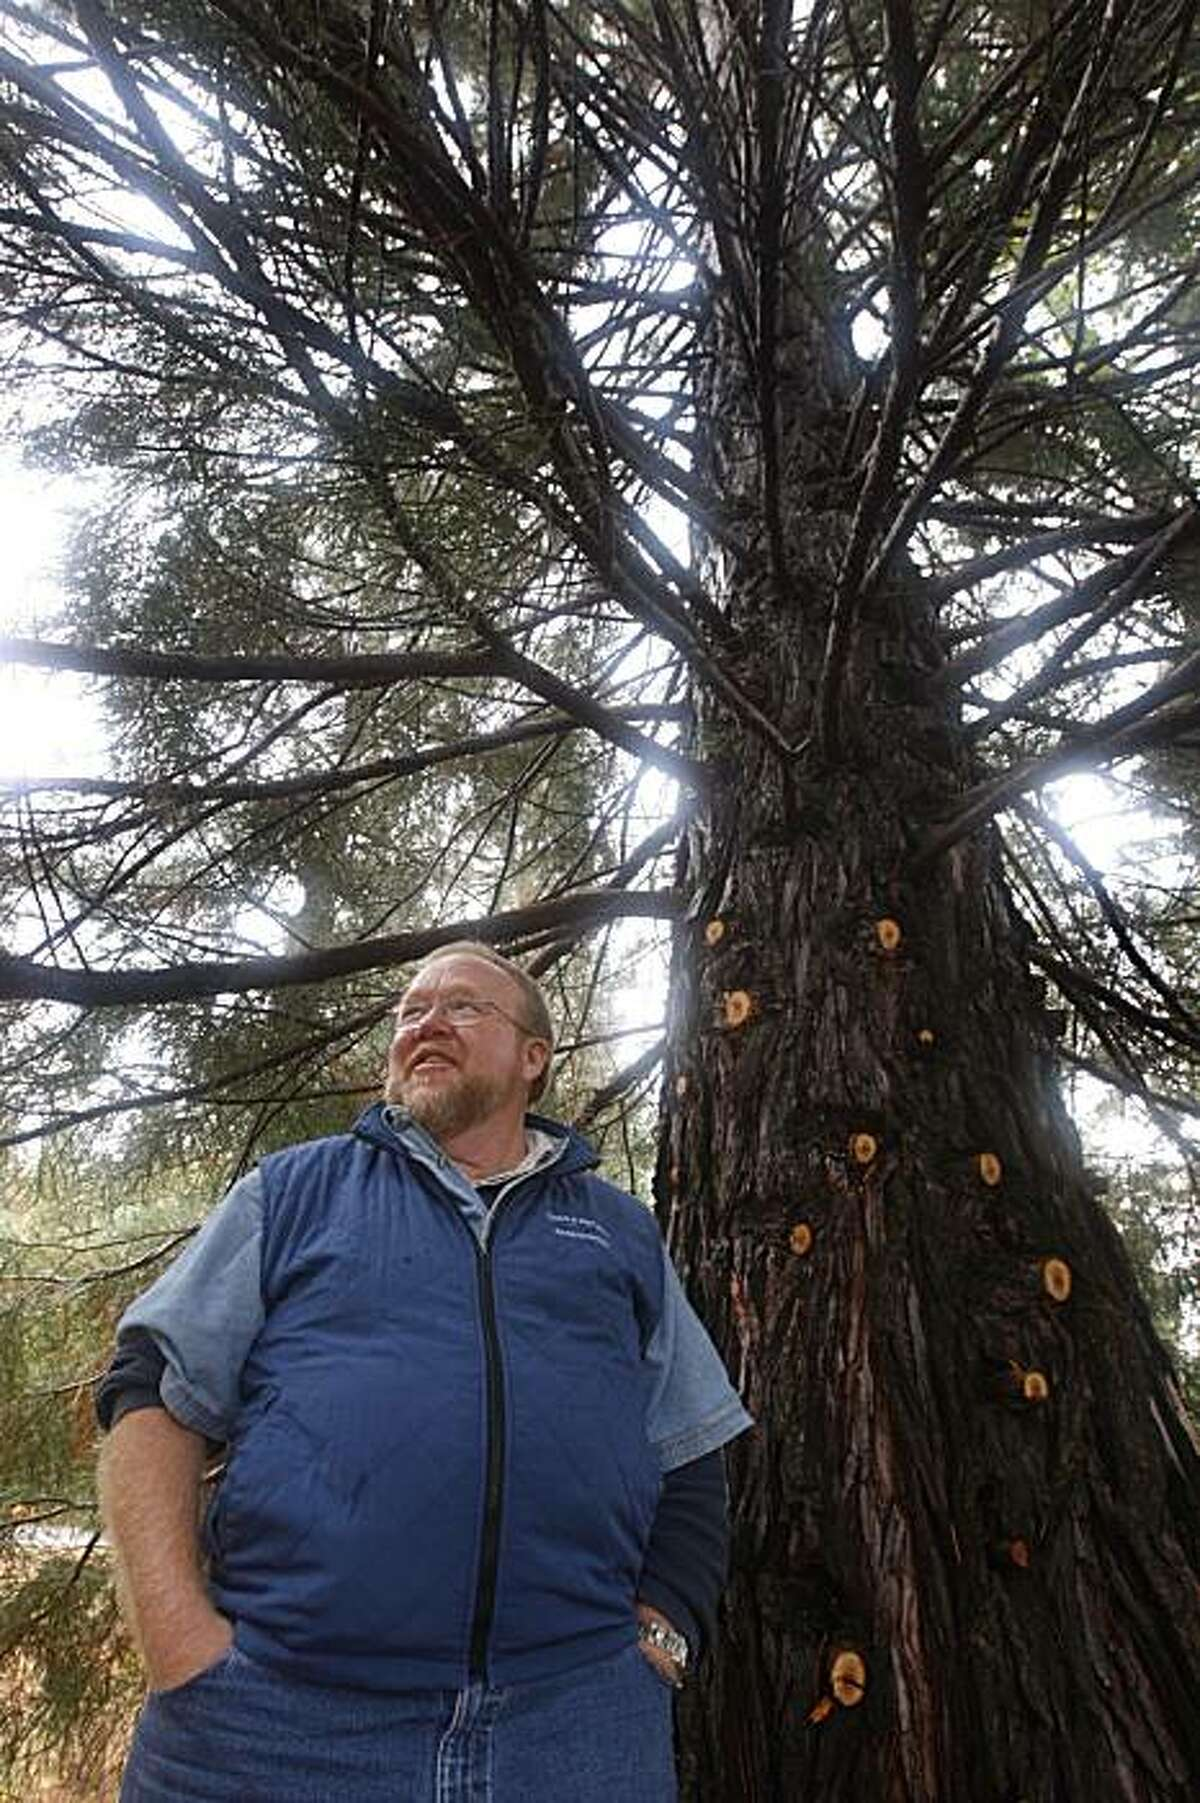 Ed Murphy, resource inventory manager for Sierra Pacific Industries, stands at the base of a 78-foot-tall Sequoia near Sonora, Calif., on Wednesday, Oct. 14, 2009. The tree was planted there in 1976. The company plans to sell off carbon offsets generated by its forests to power companies and investors.